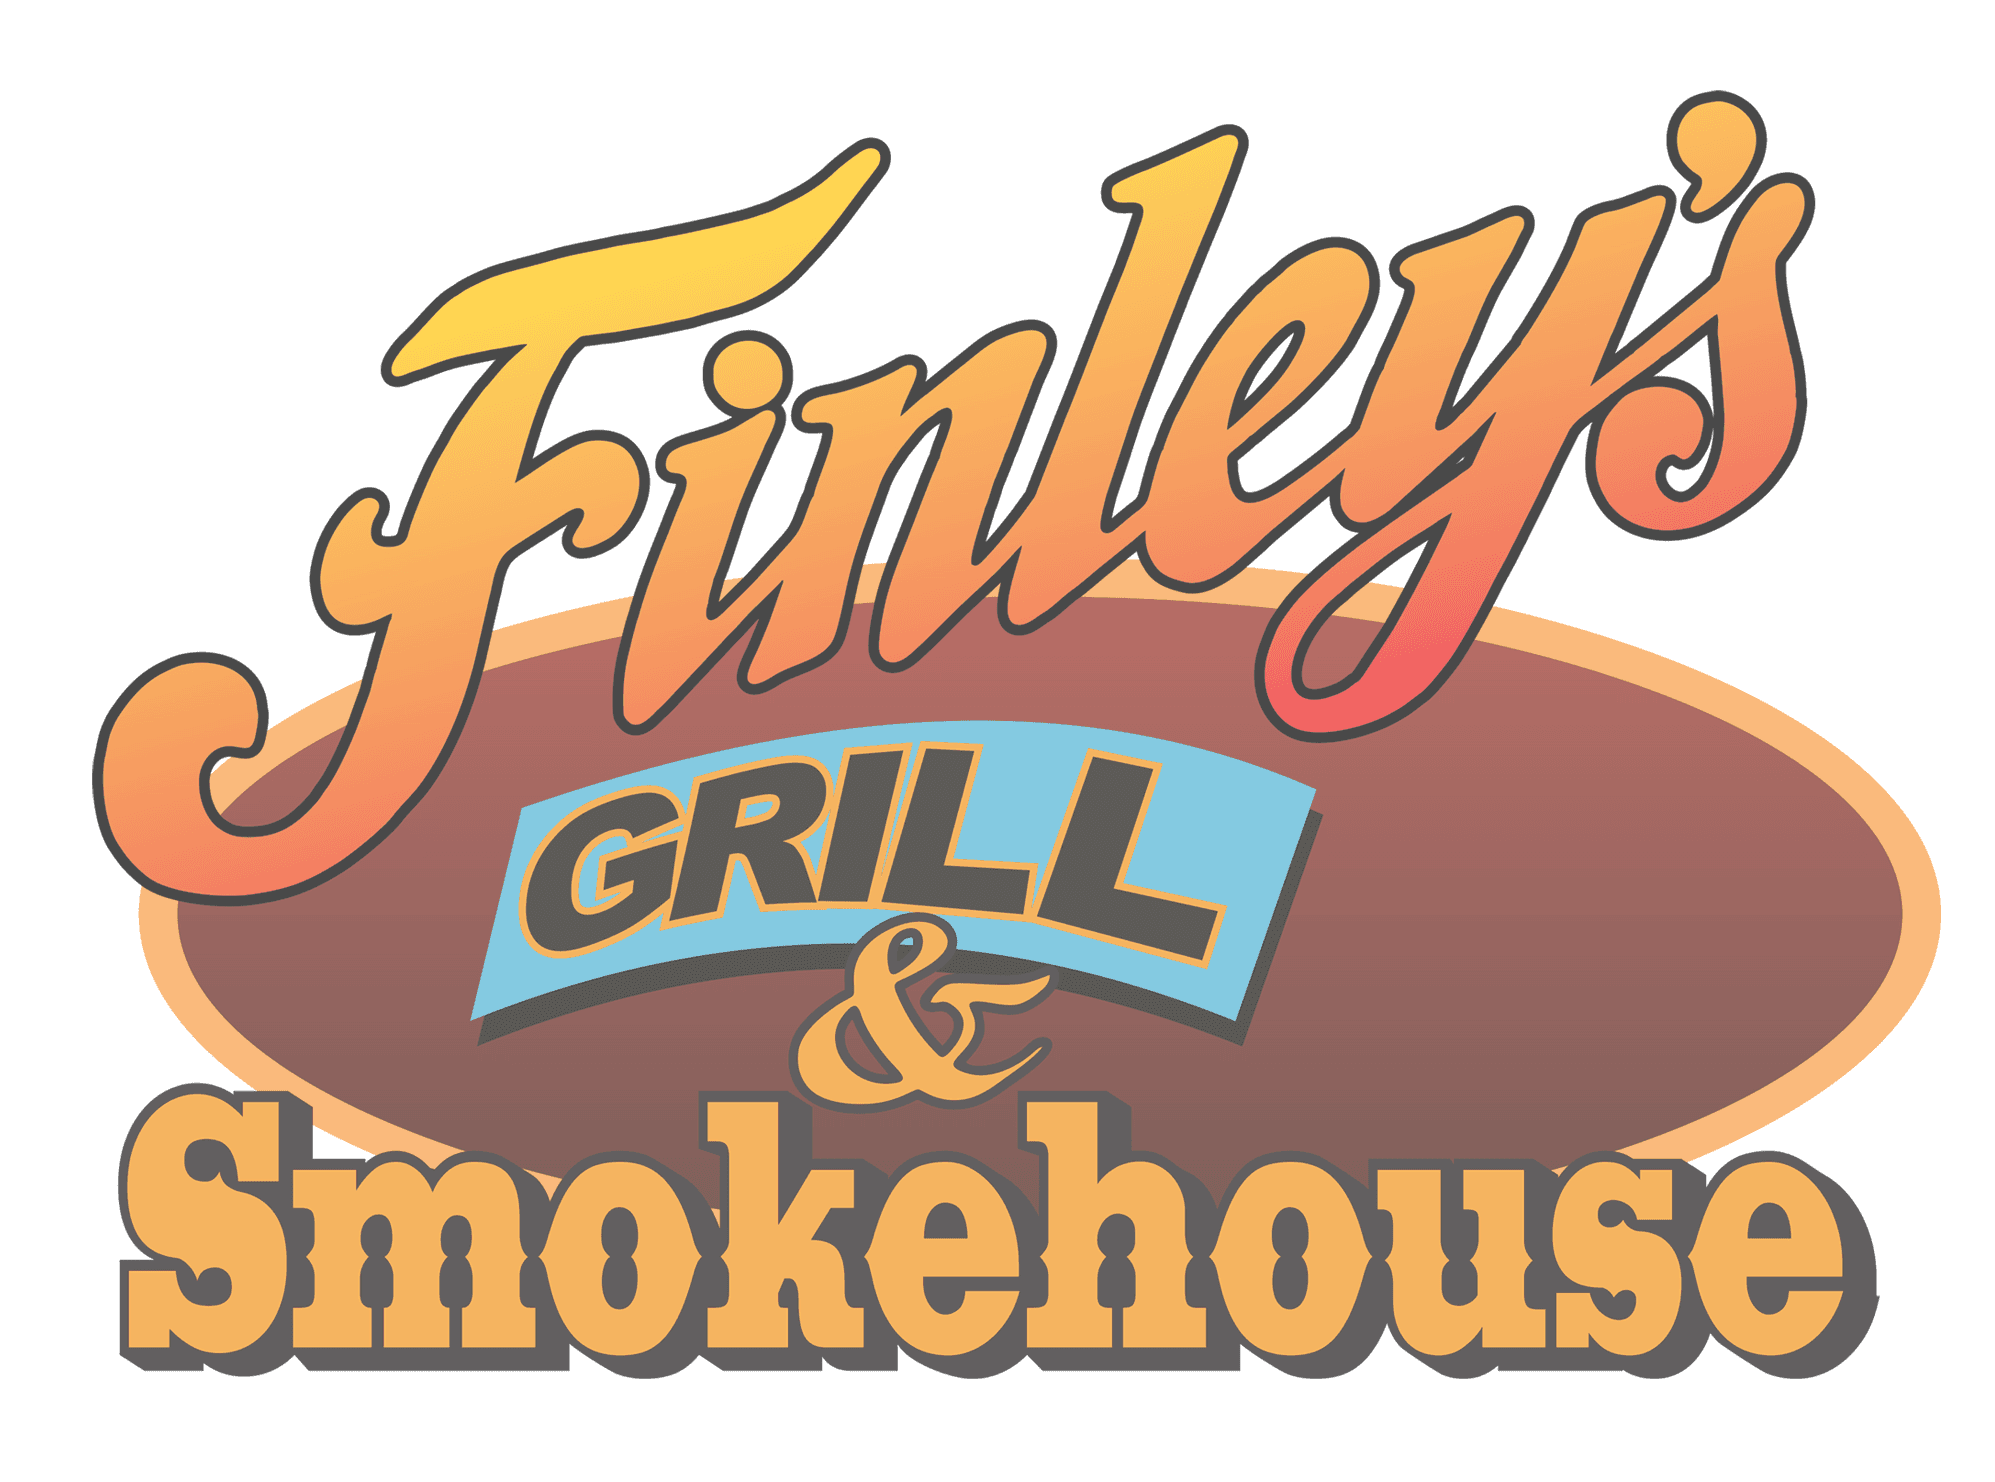 Finley s grill smokehouse. Clipart lunch sandwich chip